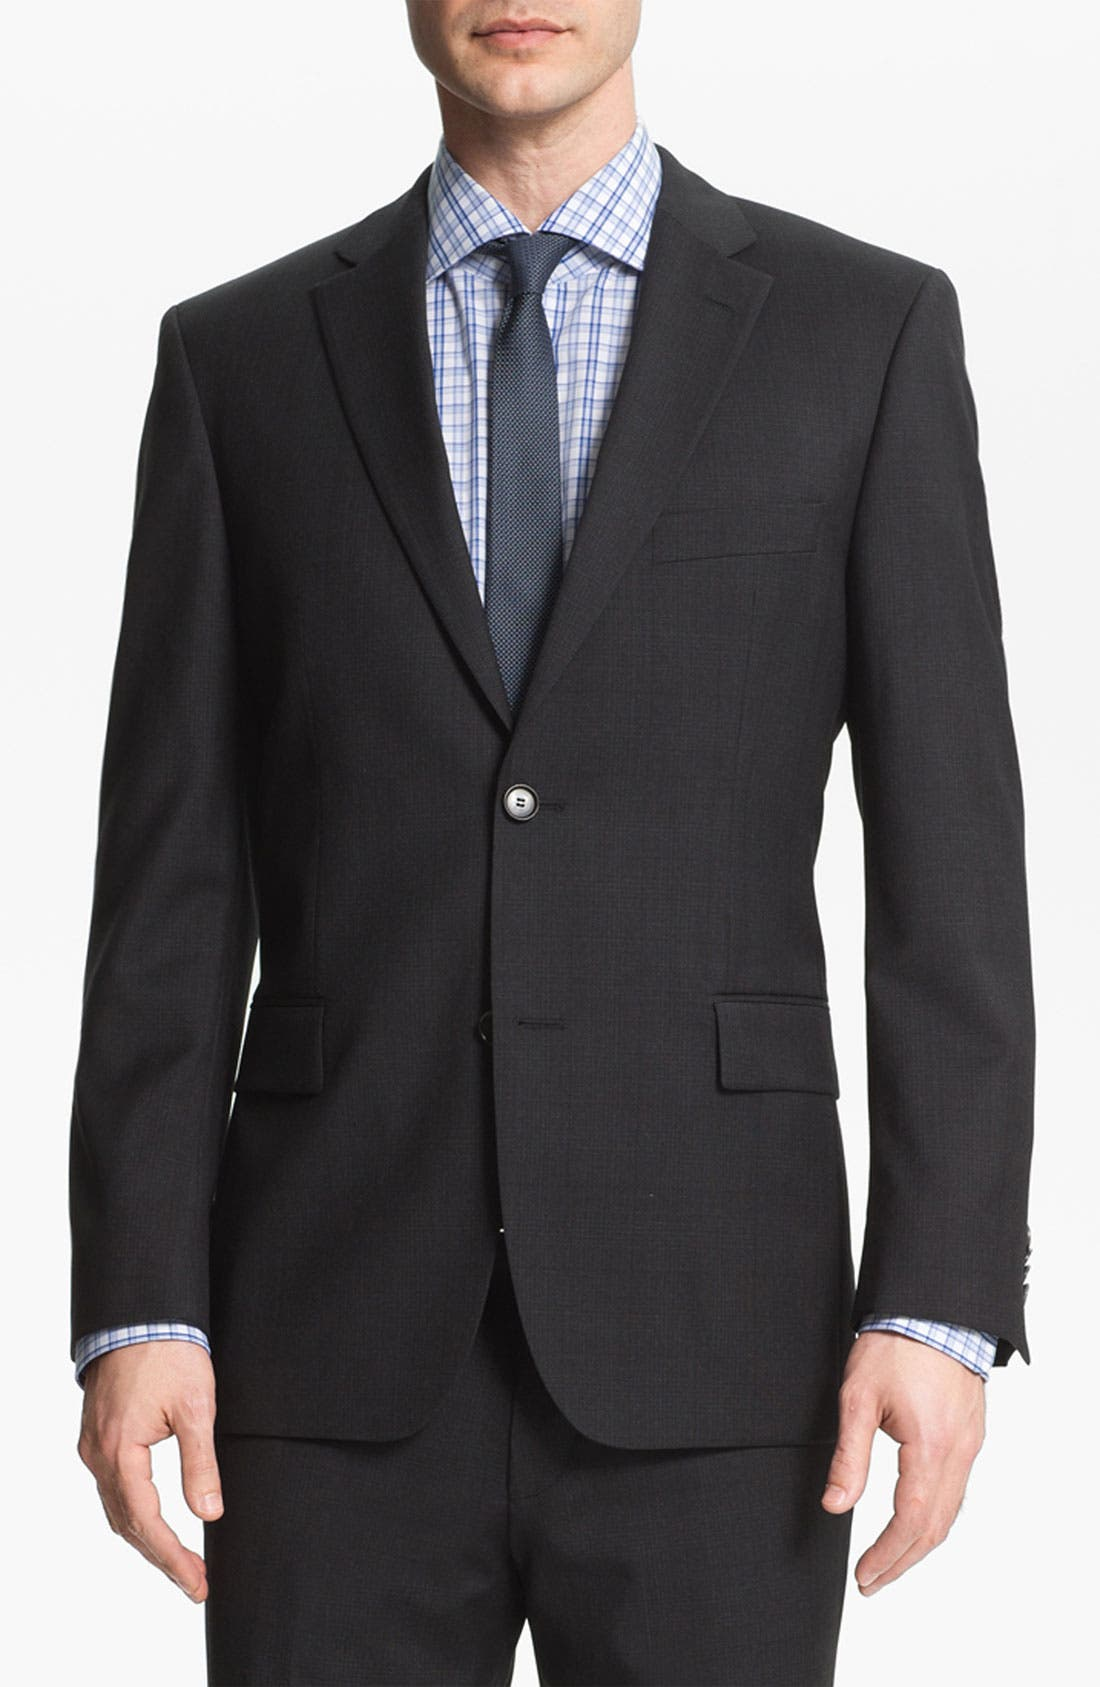 Alternate Image 1 Selected - BOSS Black 'Pasini/Movie' Plaid Wool Suit